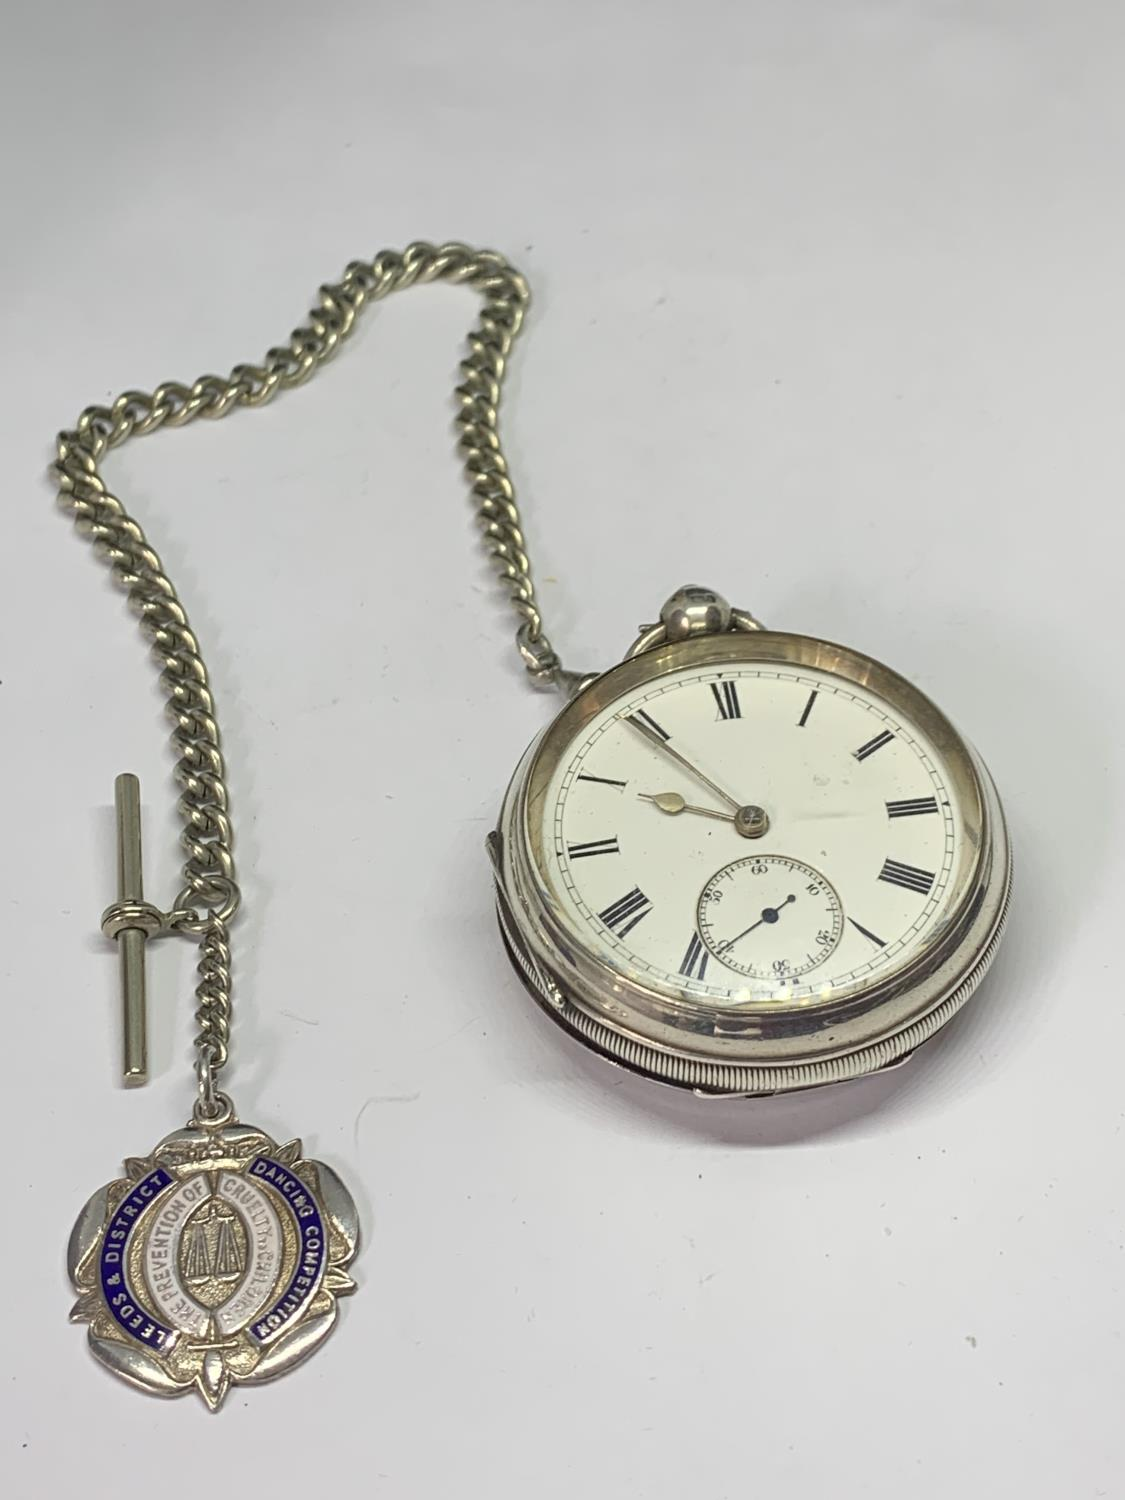 A HALLMARKED BIRMINGHAM SILVER POCKET WATCH WITH ALBERT CHAIN AND FOB